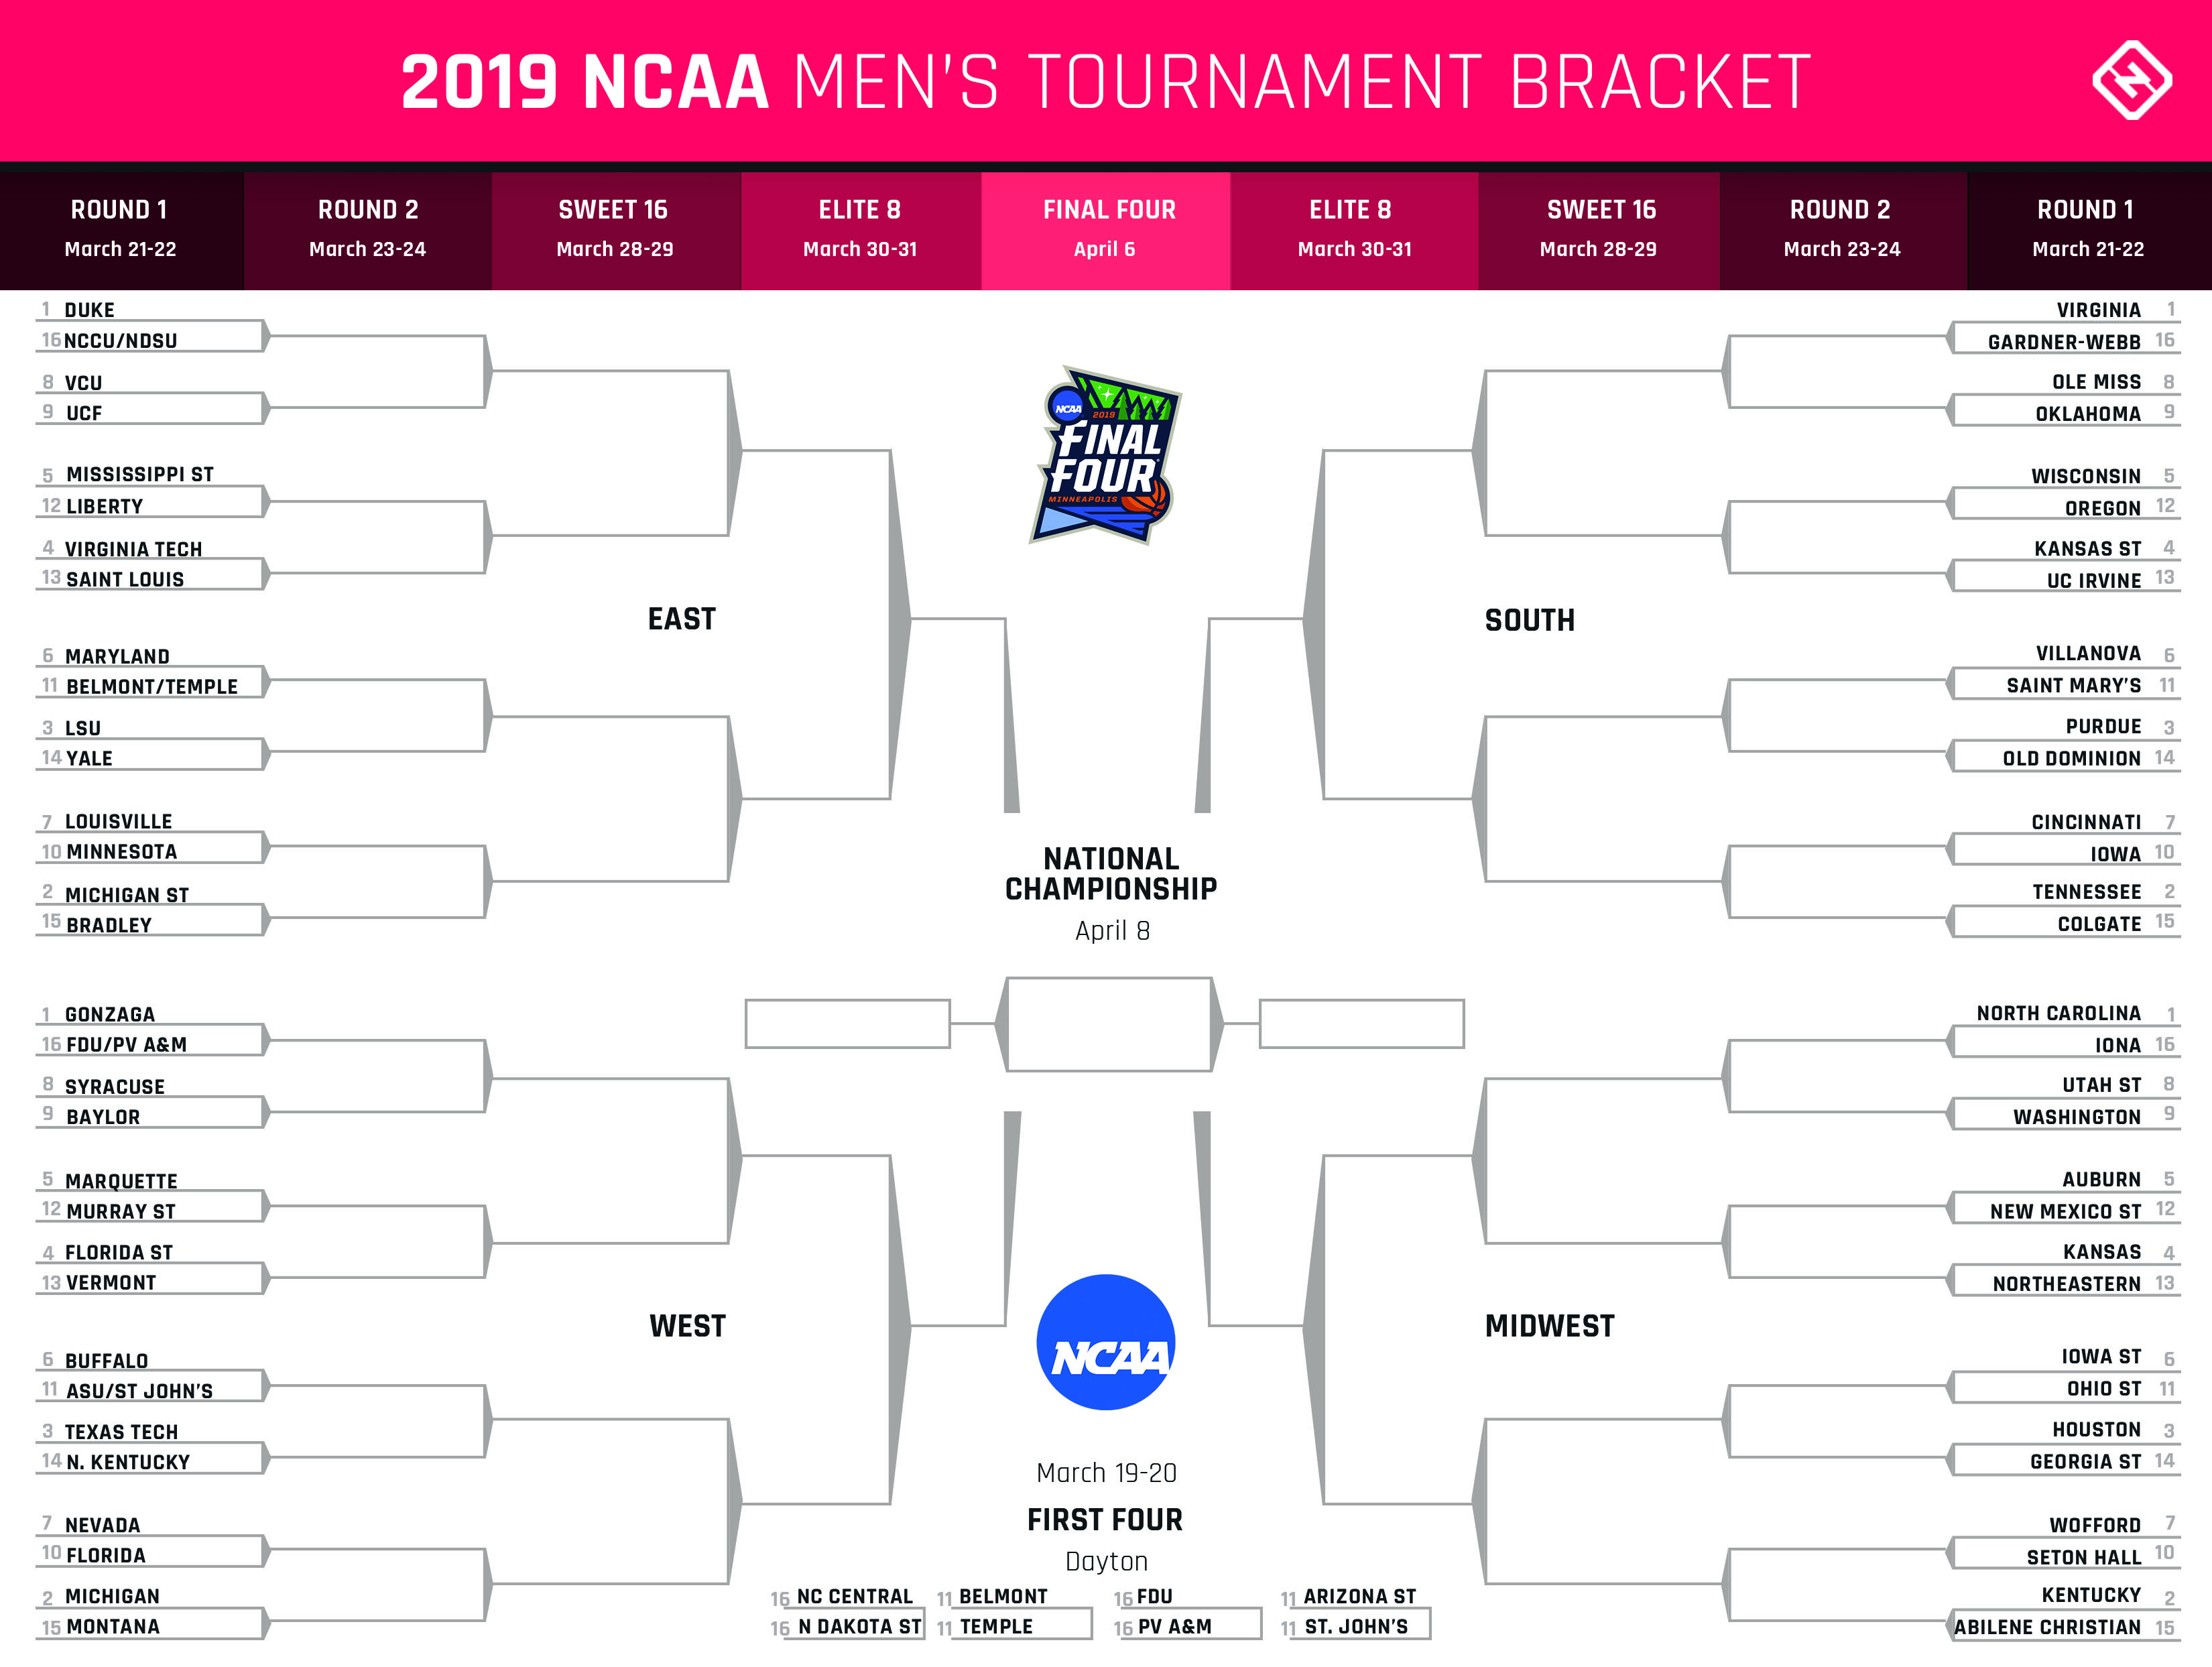 photo regarding Brewers Schedule Printable referred to as March Insanity 2019 bracket: Printable NCAA Event